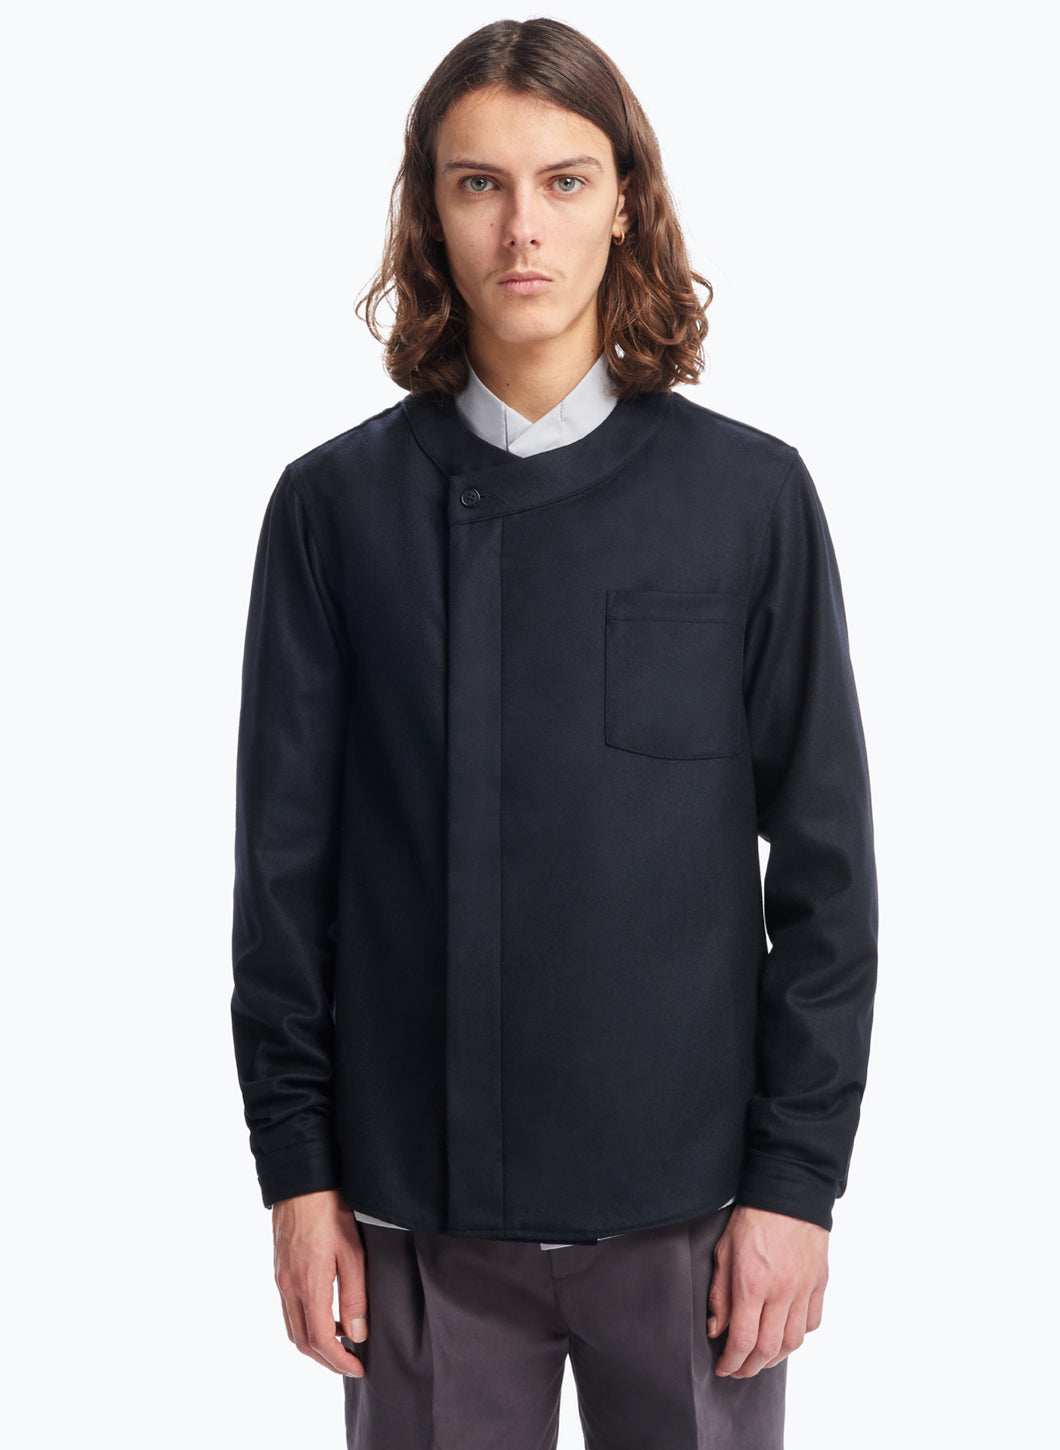 Overshirt with Crossed Crew Neck in Black Flannel Wool